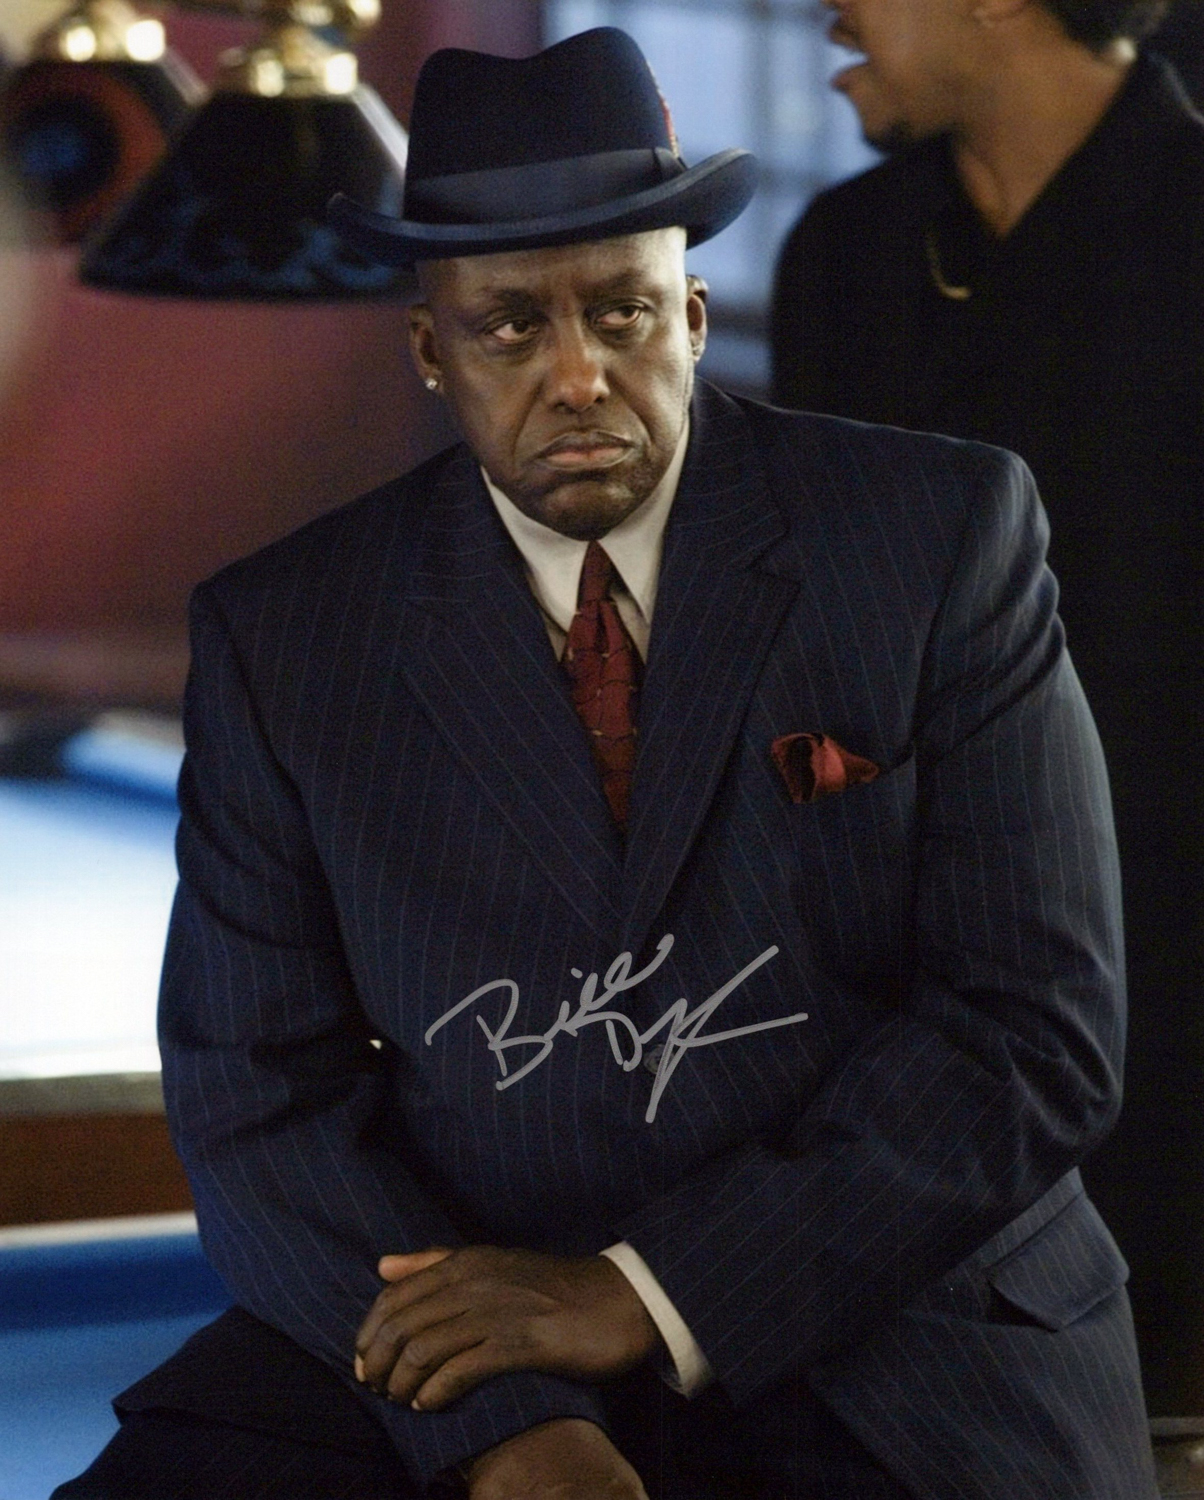 Bill Duke Original Autogramm auf Foto 20x25cm - Rich or Die trying